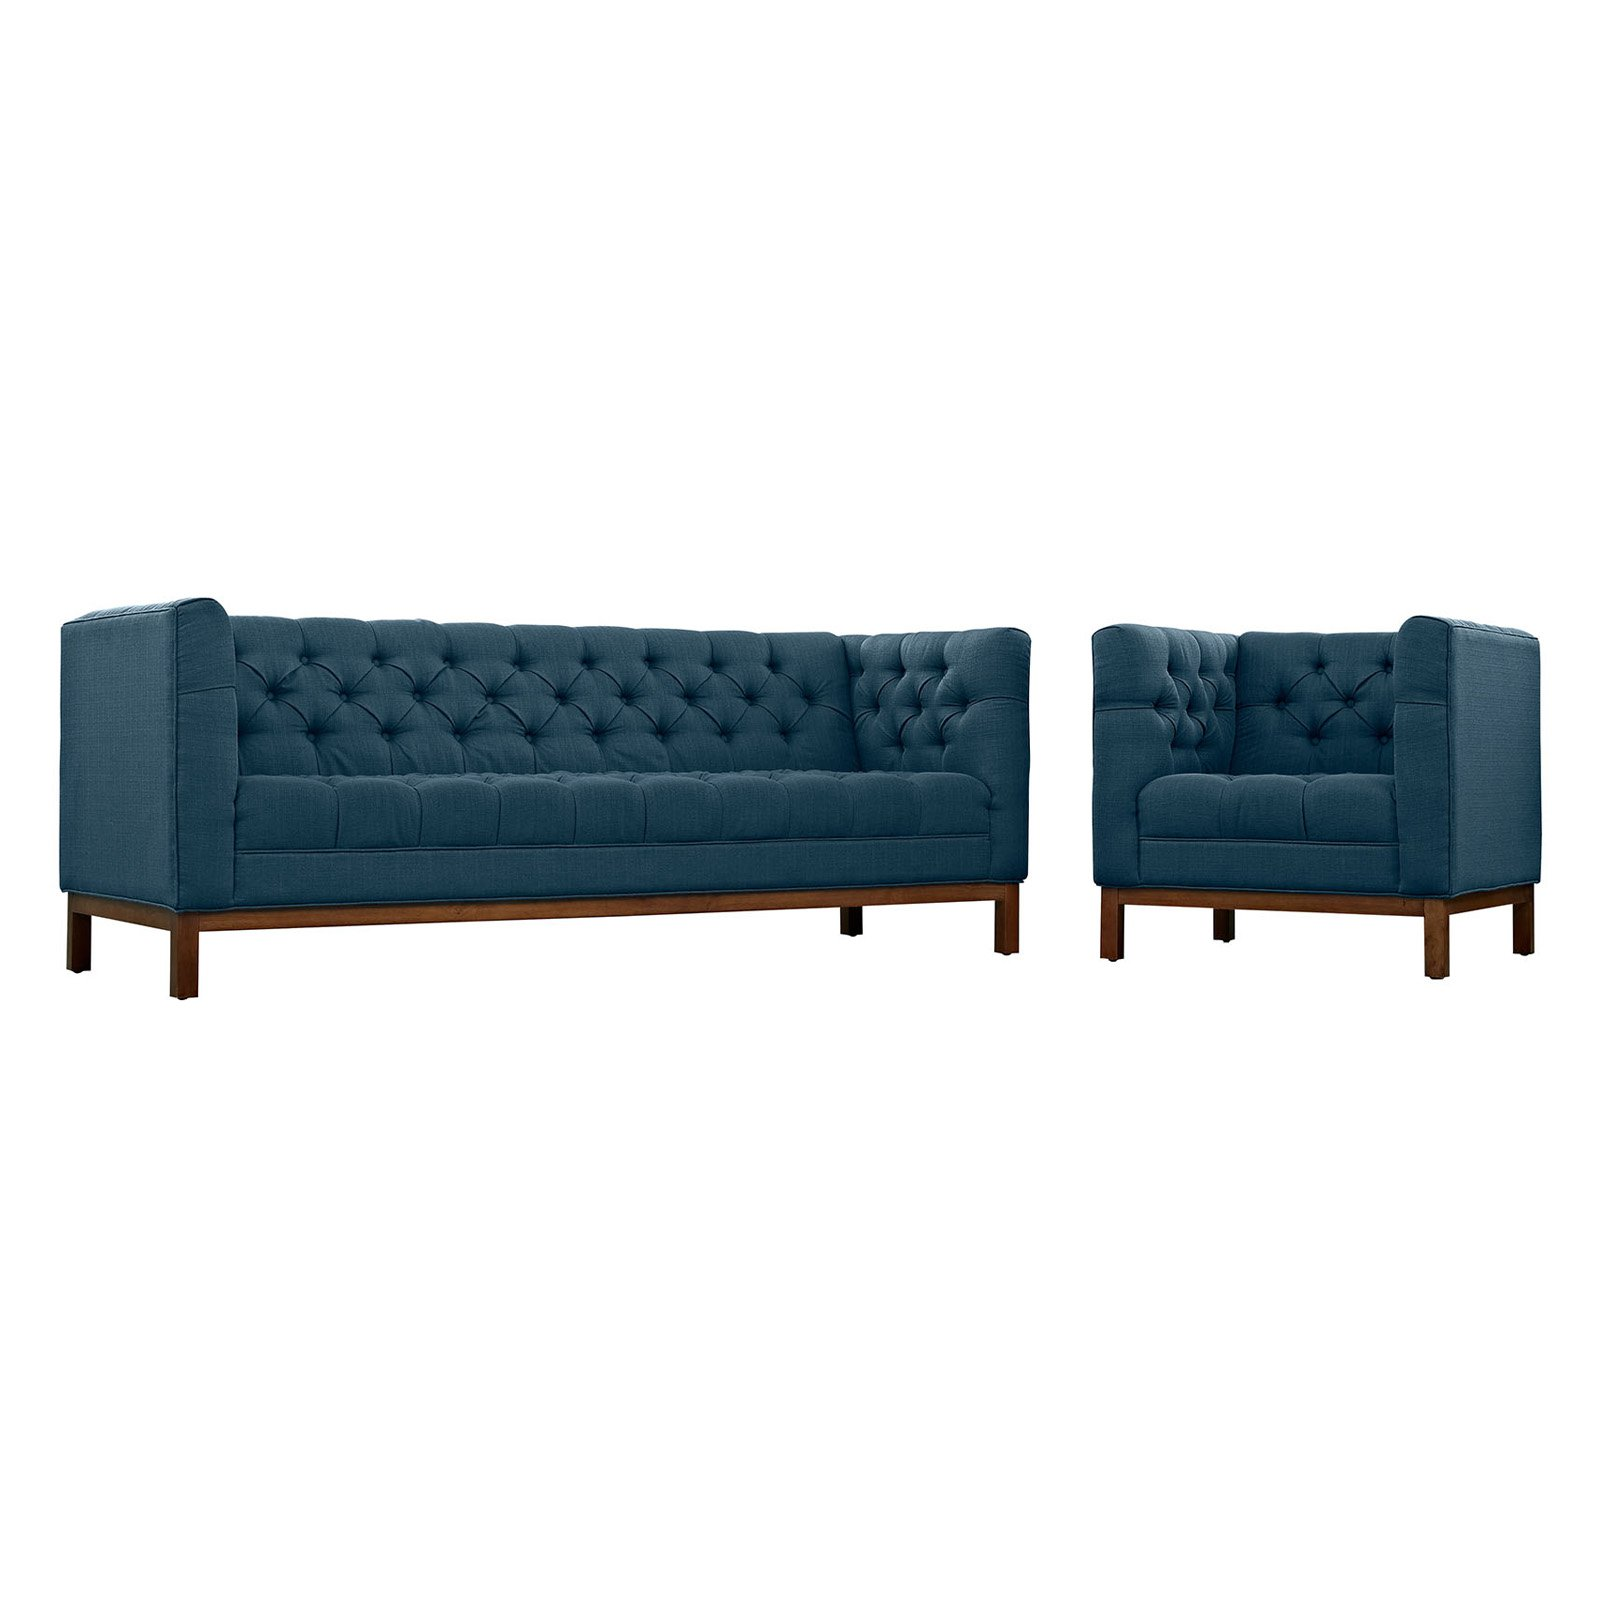 Modway Panache Living Room Set, Upholstered, Set Of 2 (Armchair And Sofa),  Multiple Colors   Walmart.com